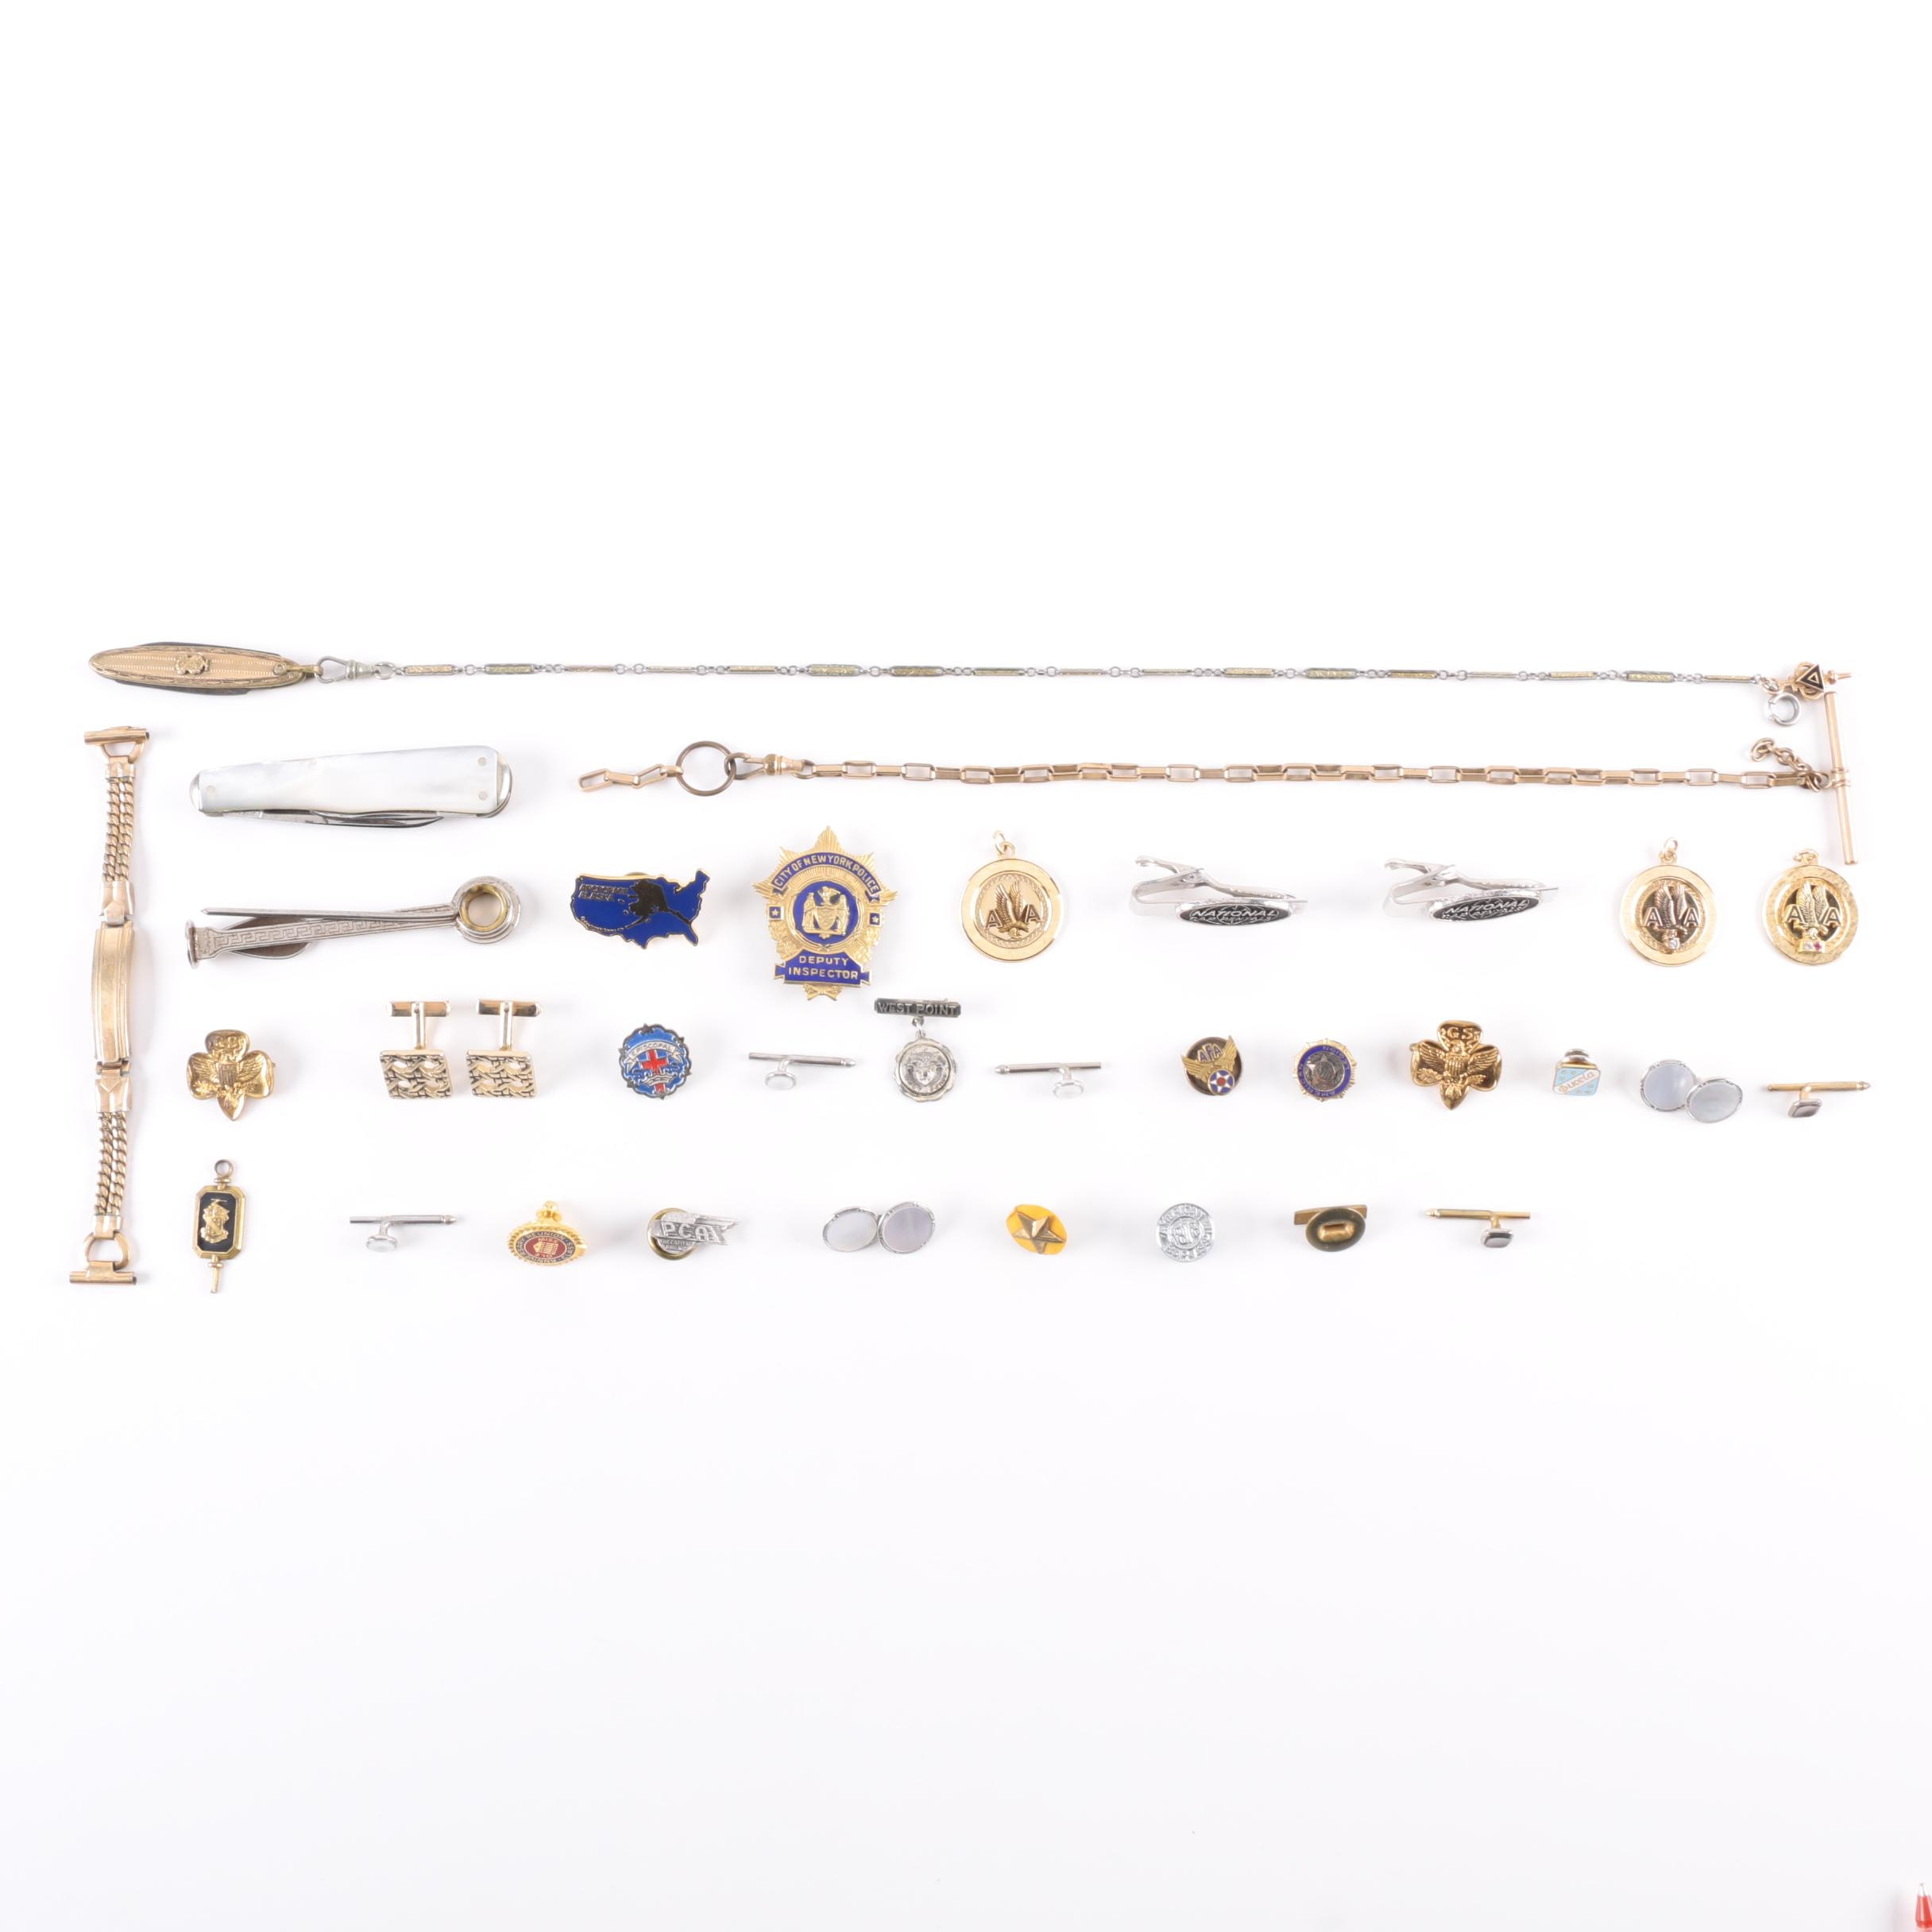 Assortment of Costume Jewelry Including a 14K Gold Charm on Fob